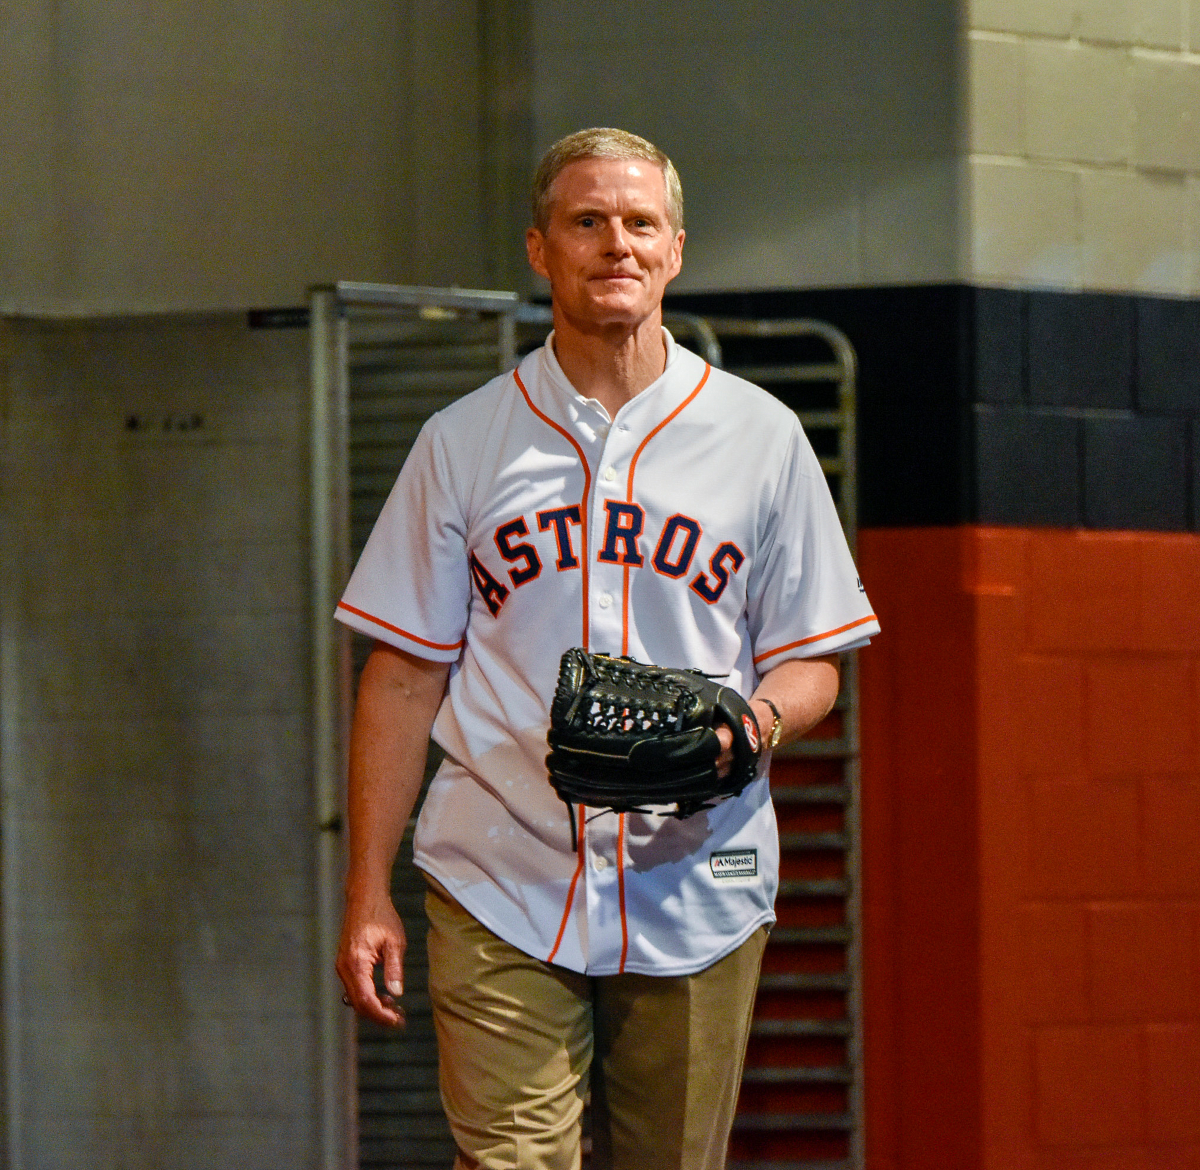 Elder David A. Bednar of the Quorum of the Twelve Apostles prepares for throwing the ceremonial first pitch at Minute Maid park.